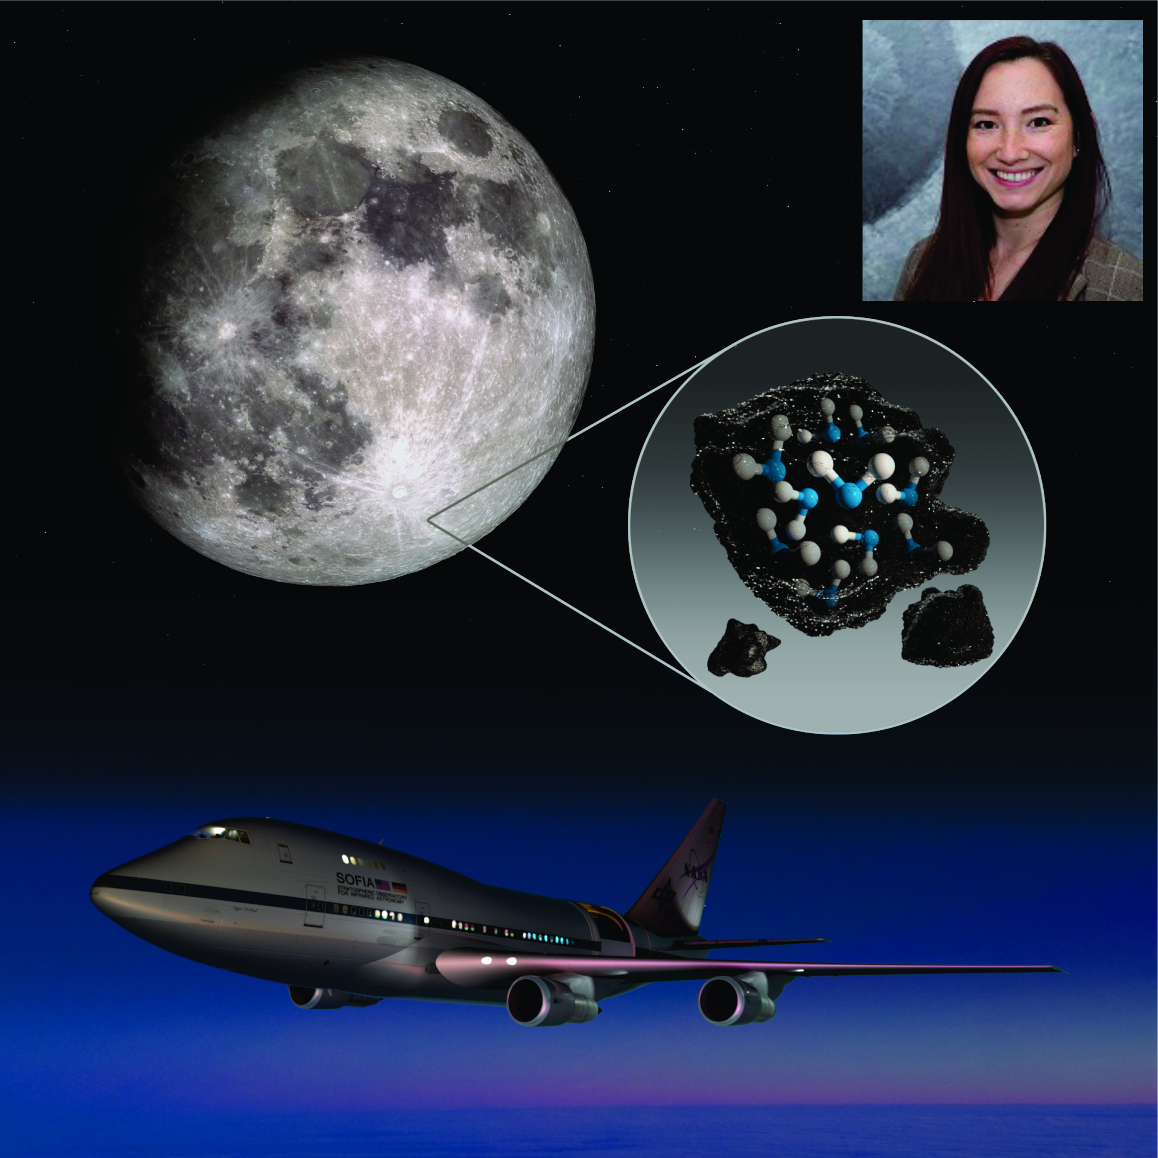 Dr Casey Honniball (who Obtained Her MS And PhD In HIGP), Alongside The Moon, NASA's SOFIA Airborne Observatory, And A Picture Showng How Water Molecules Occur On The Lunar Surface. Image Courtesy Of NASA